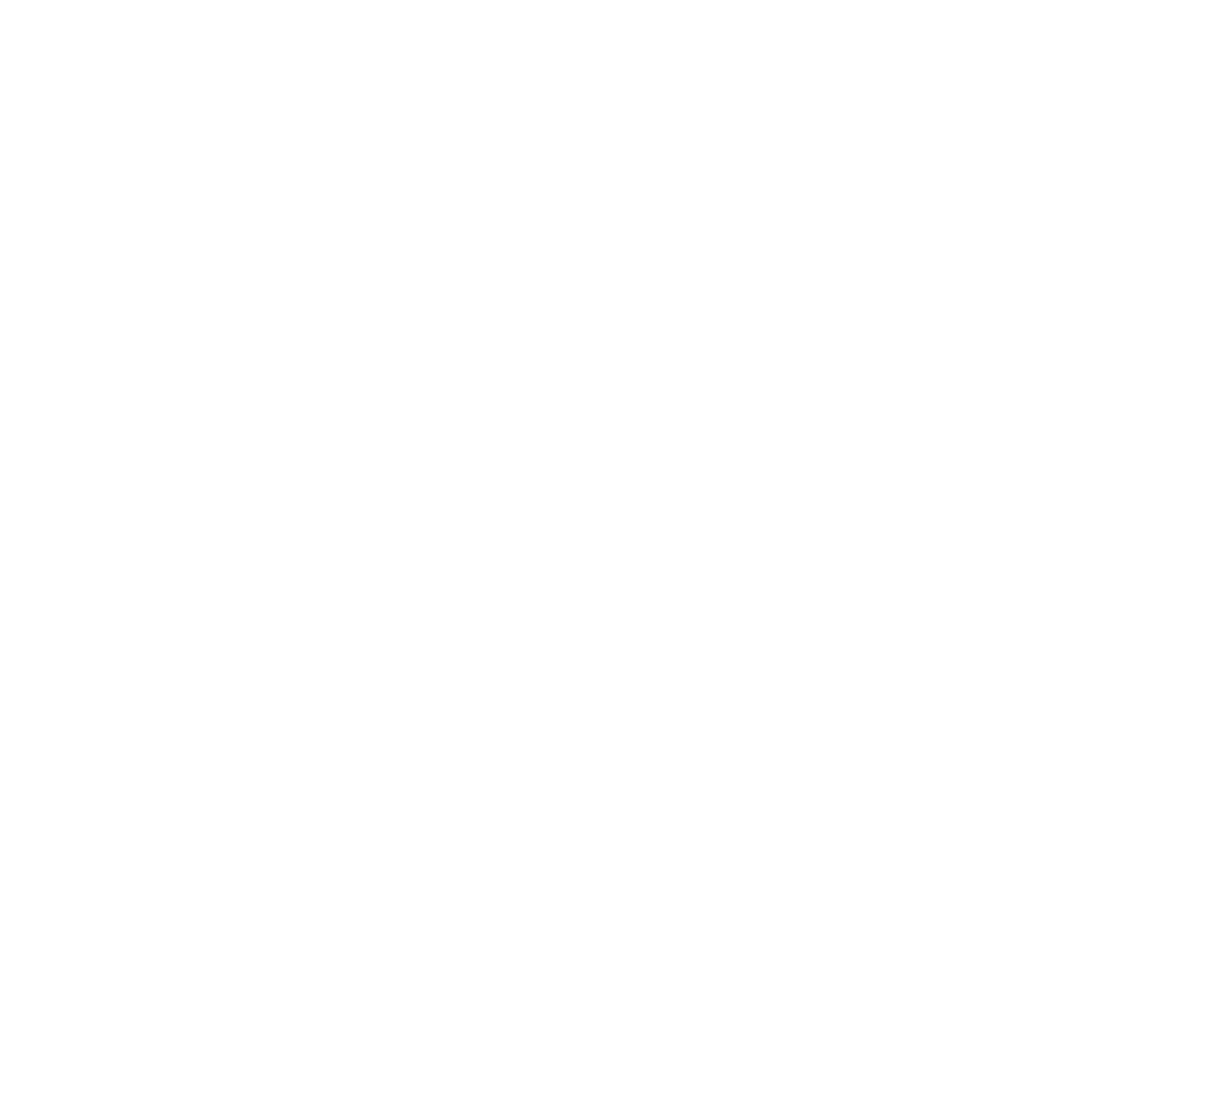 weed logo png www pixshark com images galleries with a pot leaf golf headcovers pot leaf leggings